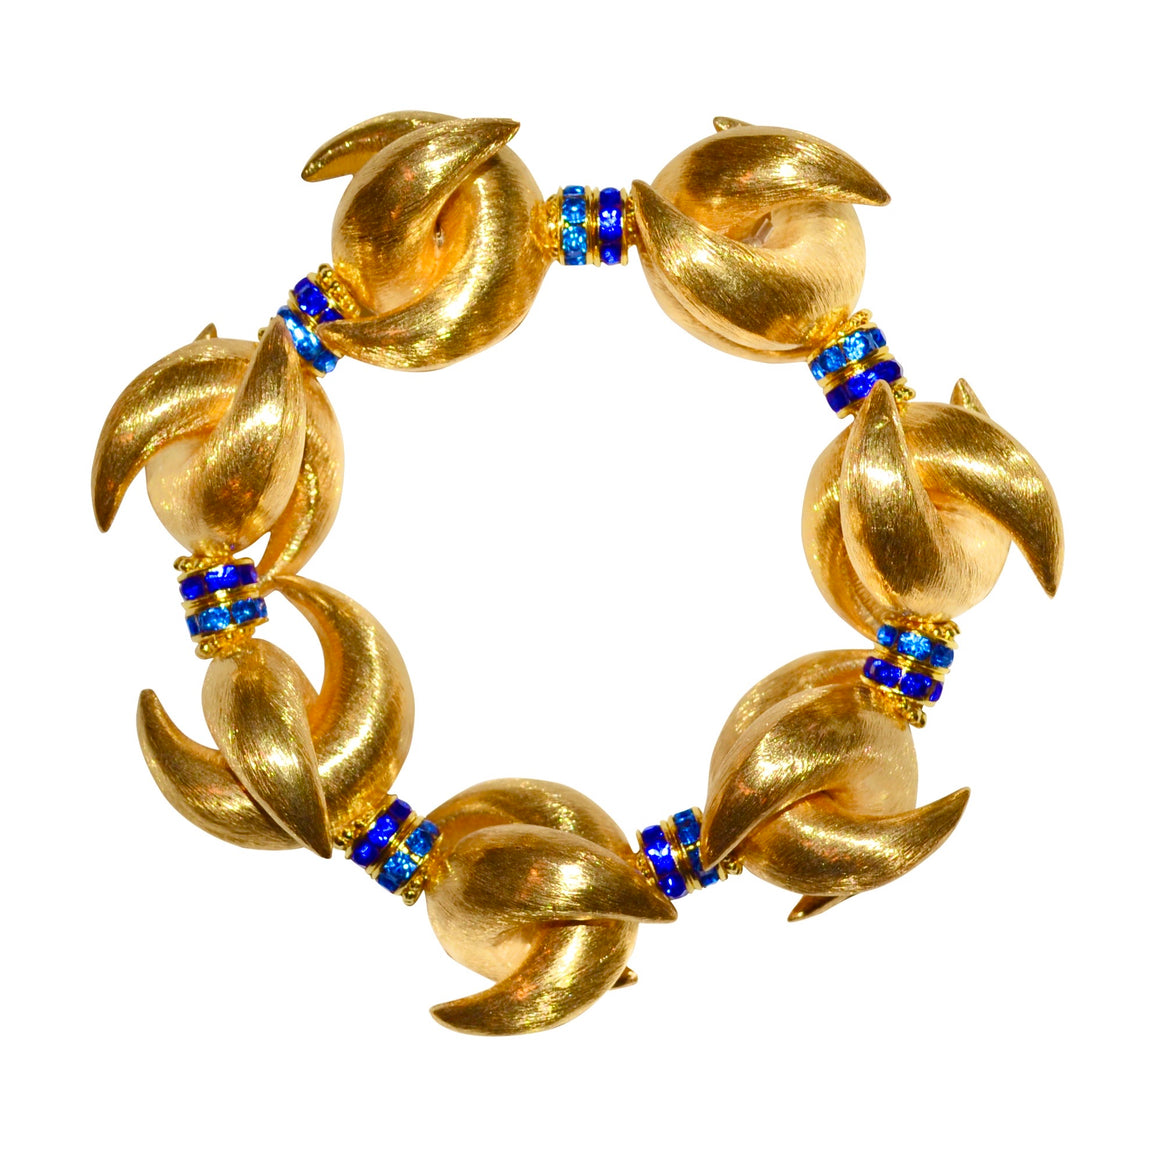 LUNA STATEMENT BRACELET IN GOLD WITH BLUE CRYSTAL